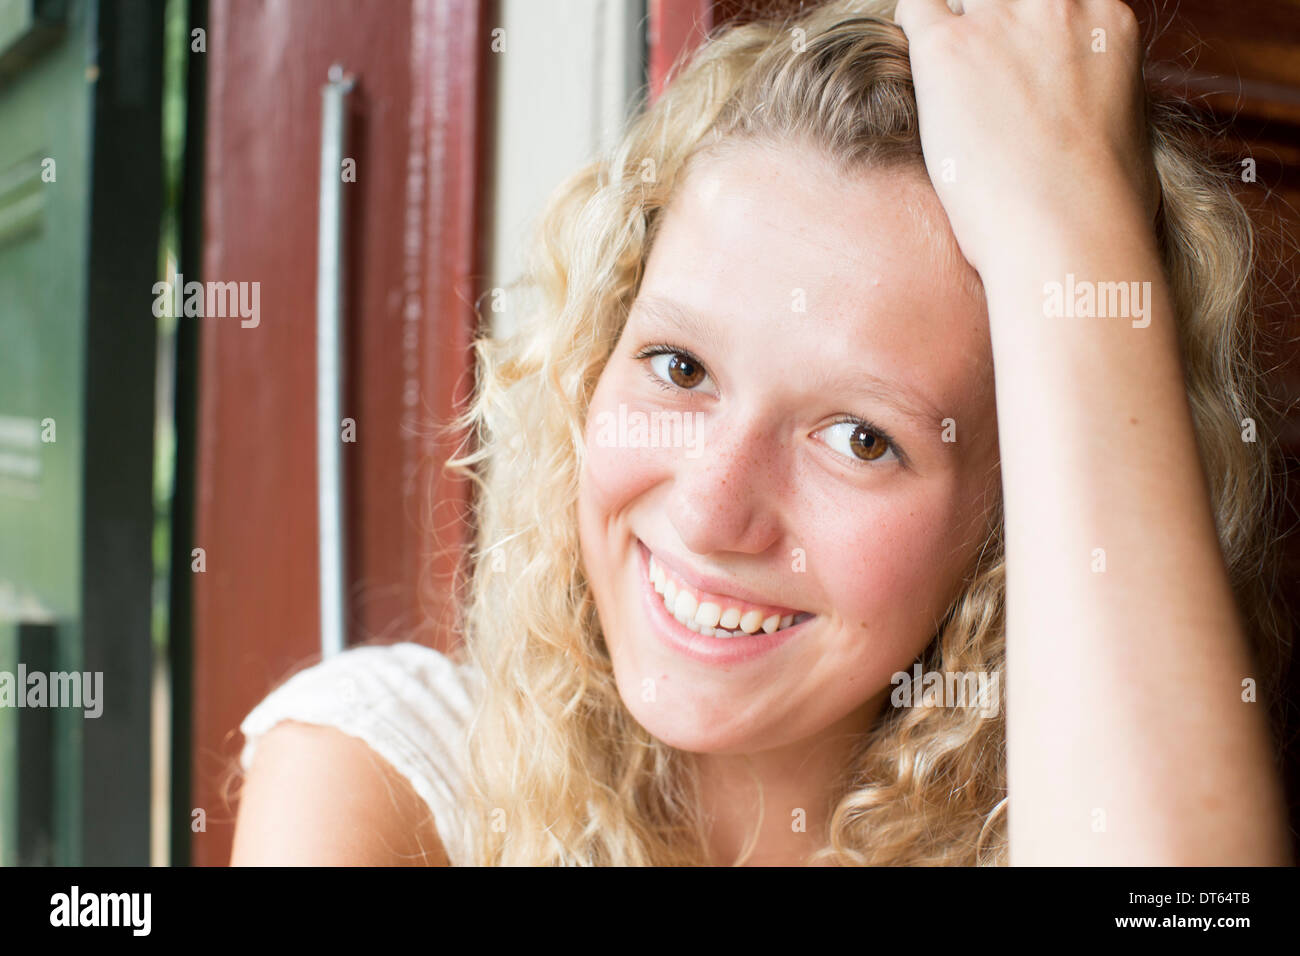 Portrait of young blonde teenager - Stock Image